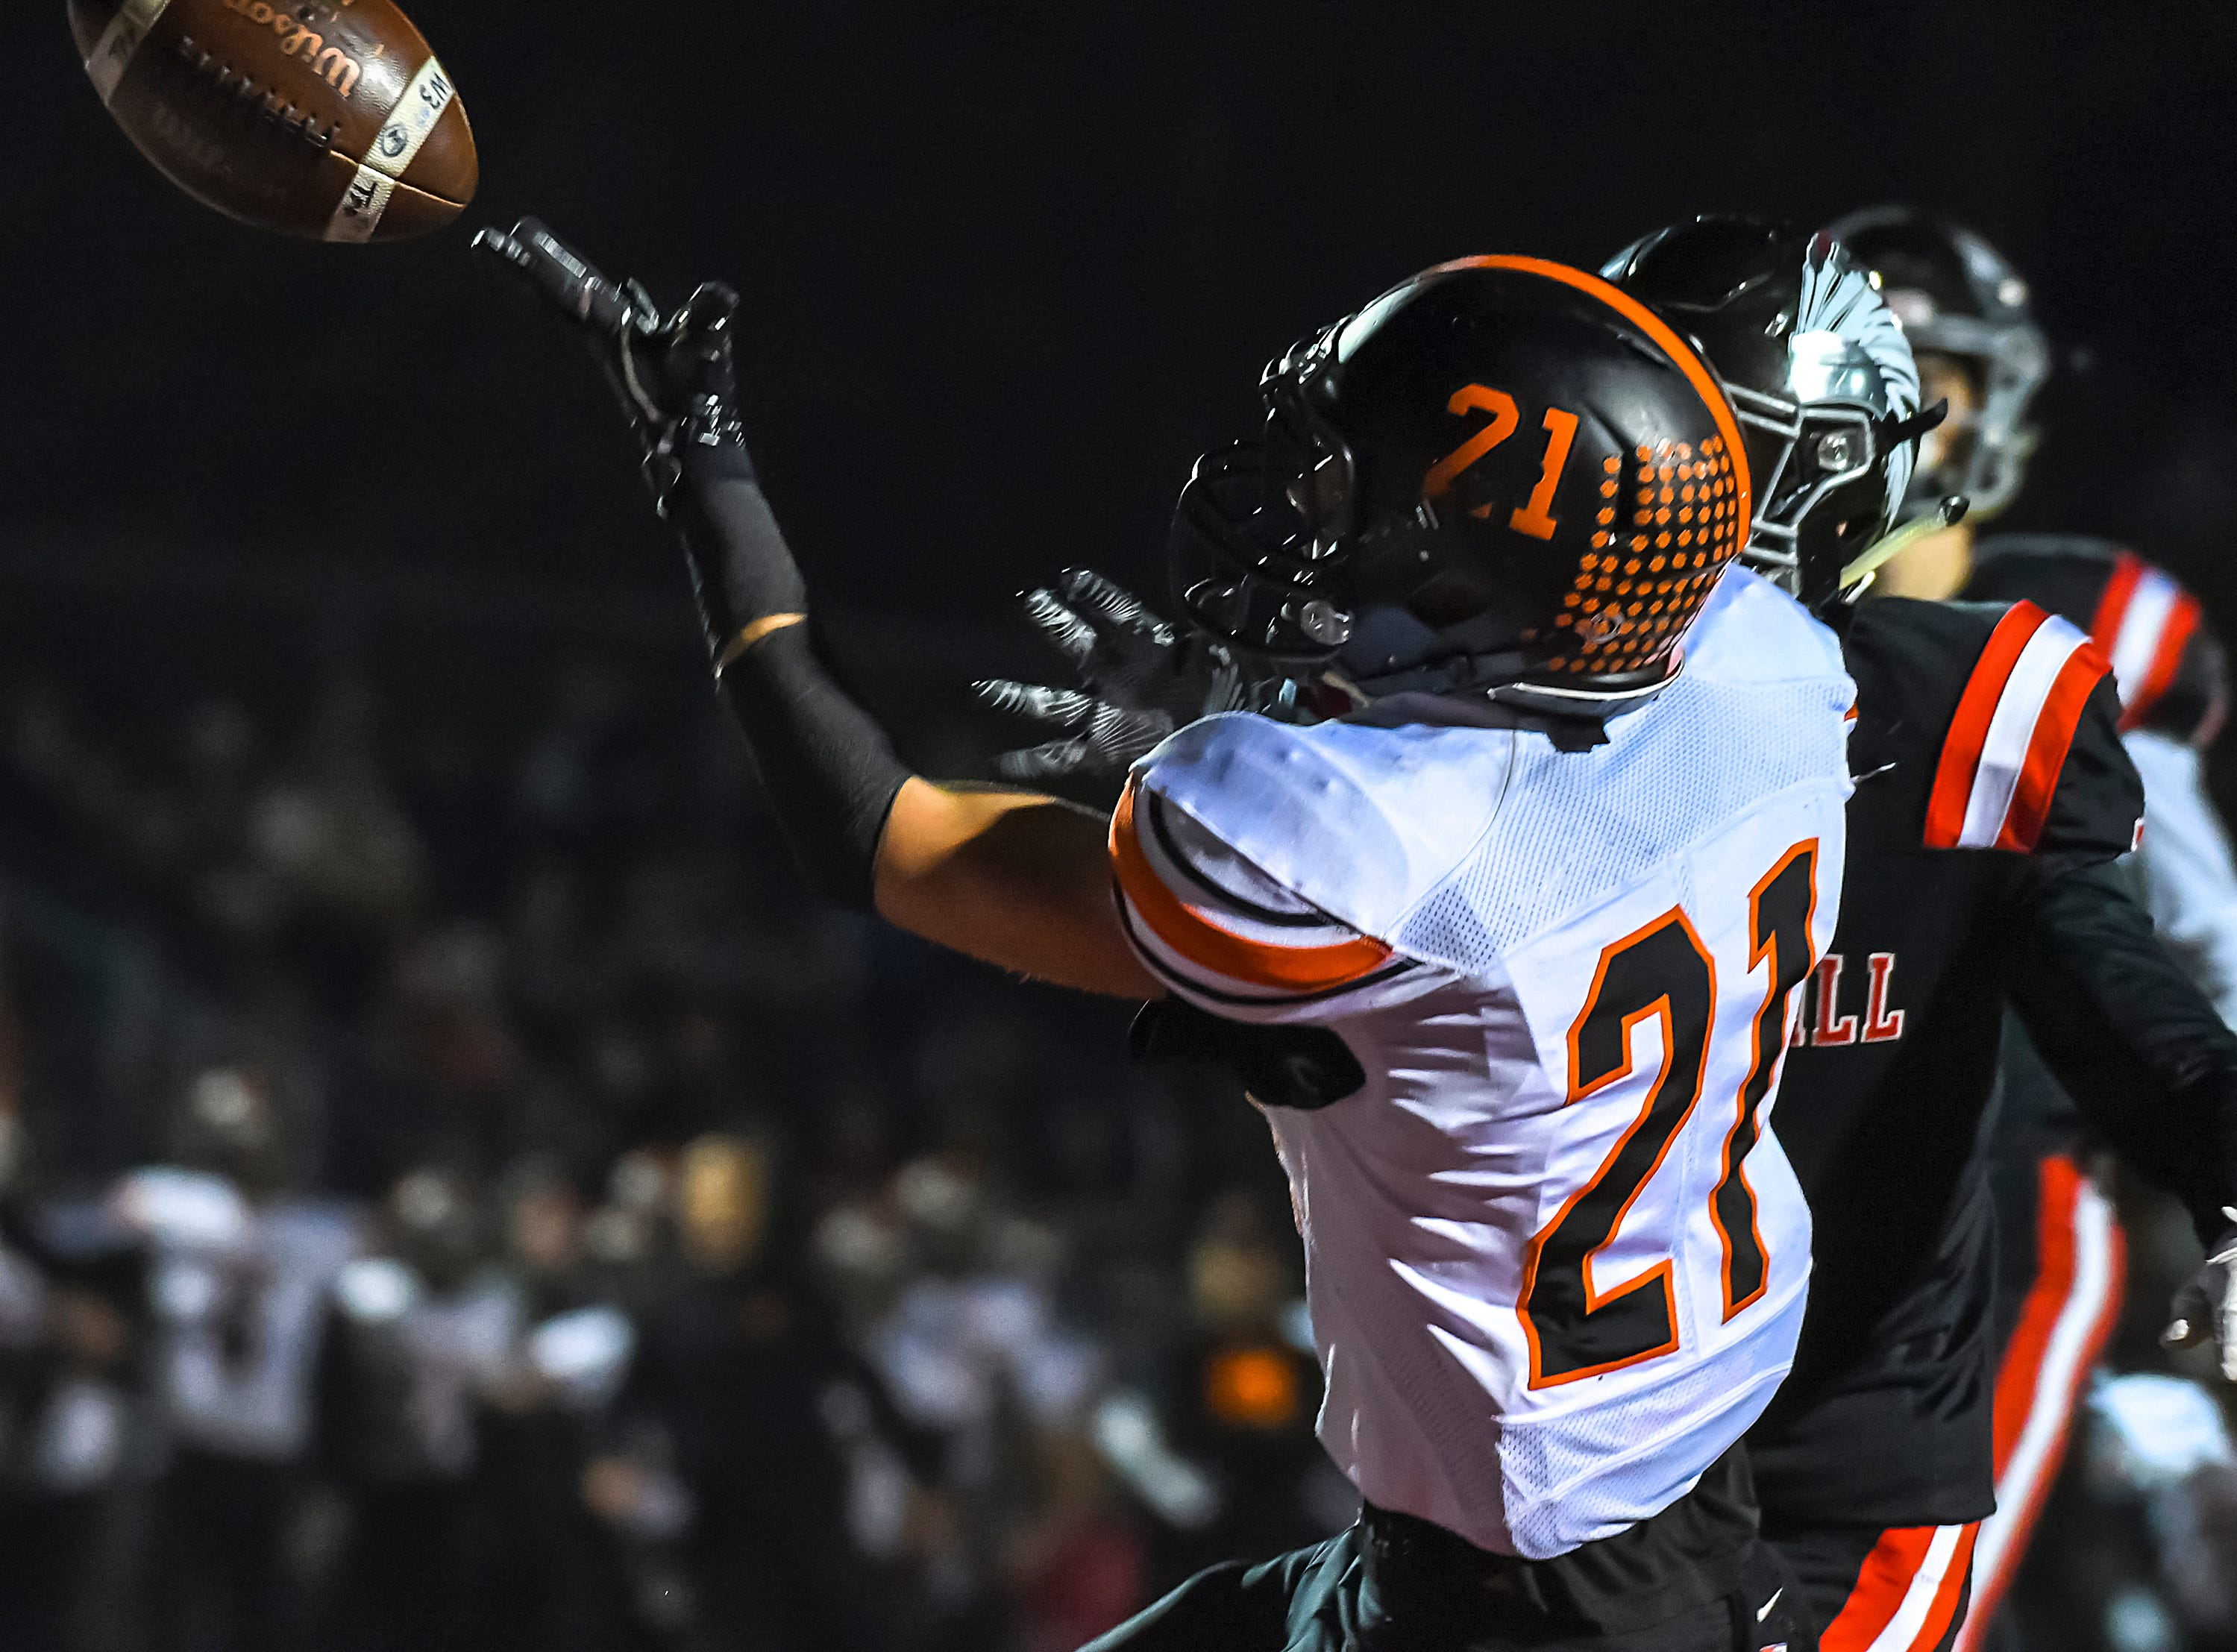 Waverly receiver Phoenix Wolf can't come up with a catch against Indian Hill in the OHSAA D4 Region 16 Playoffs at Indian Hill High School, Saturday, Nov. 3, 2018